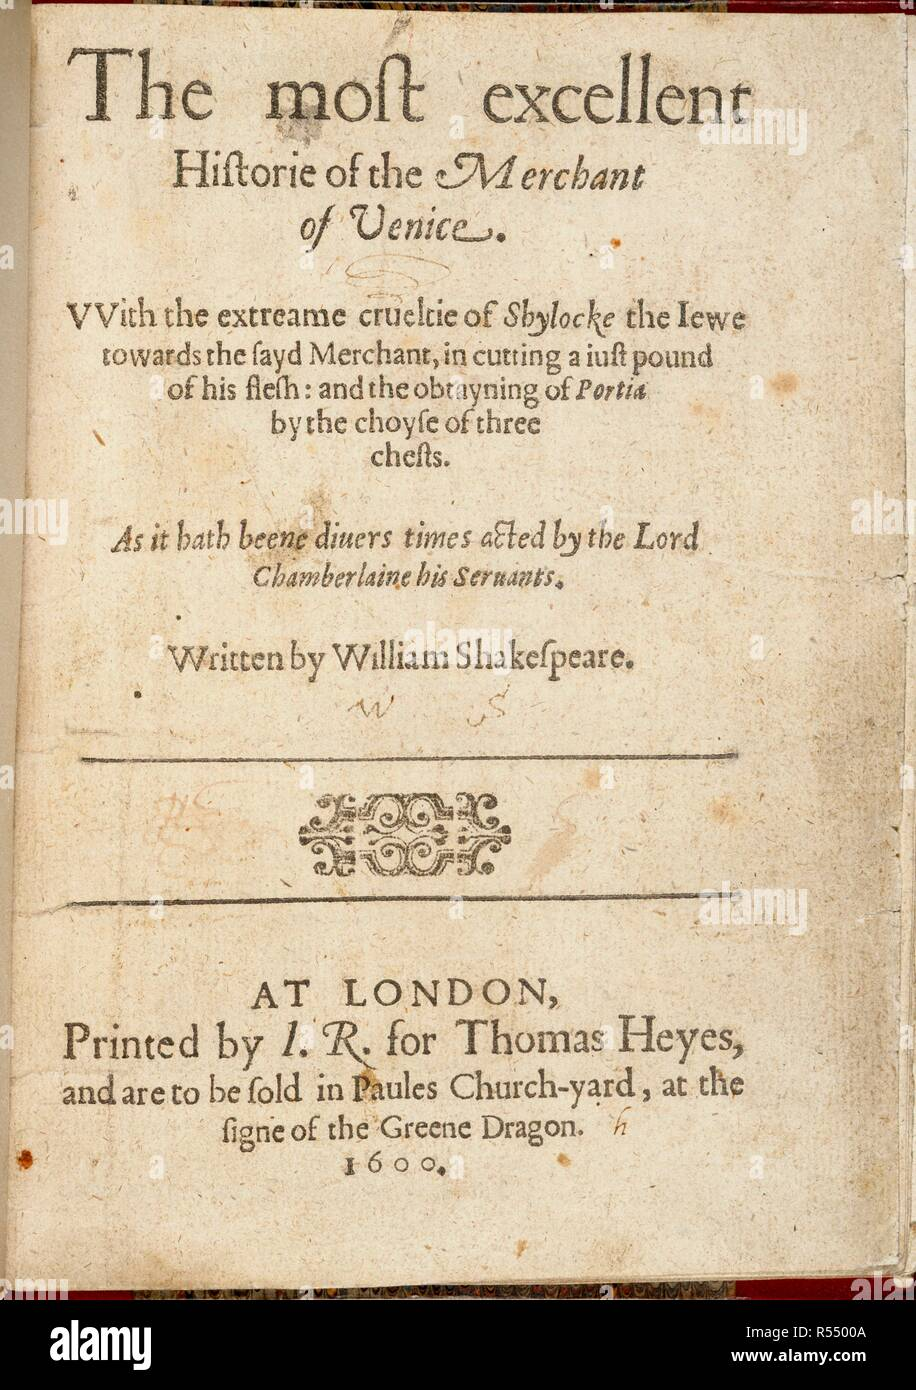 Title page of 'The most excellent Historie of the Merchant of Venice'. The most excellent Historie of the Merchant of Venice. With the extreame crueltie of Shylocke the Iewe towards the sayd Merchant, in cutting a iust pound of his flesh: and the obtayning of Portia by the choyse of three chests. As it hath beene diuers times acted by the Lord Chamberlaine his Seruants. Written by William Shakespeare. Printed by I. R[oberts], for Thomas Heyes: London, 1600. Source: C.12.g.32, title page. Language: English. - Stock Image